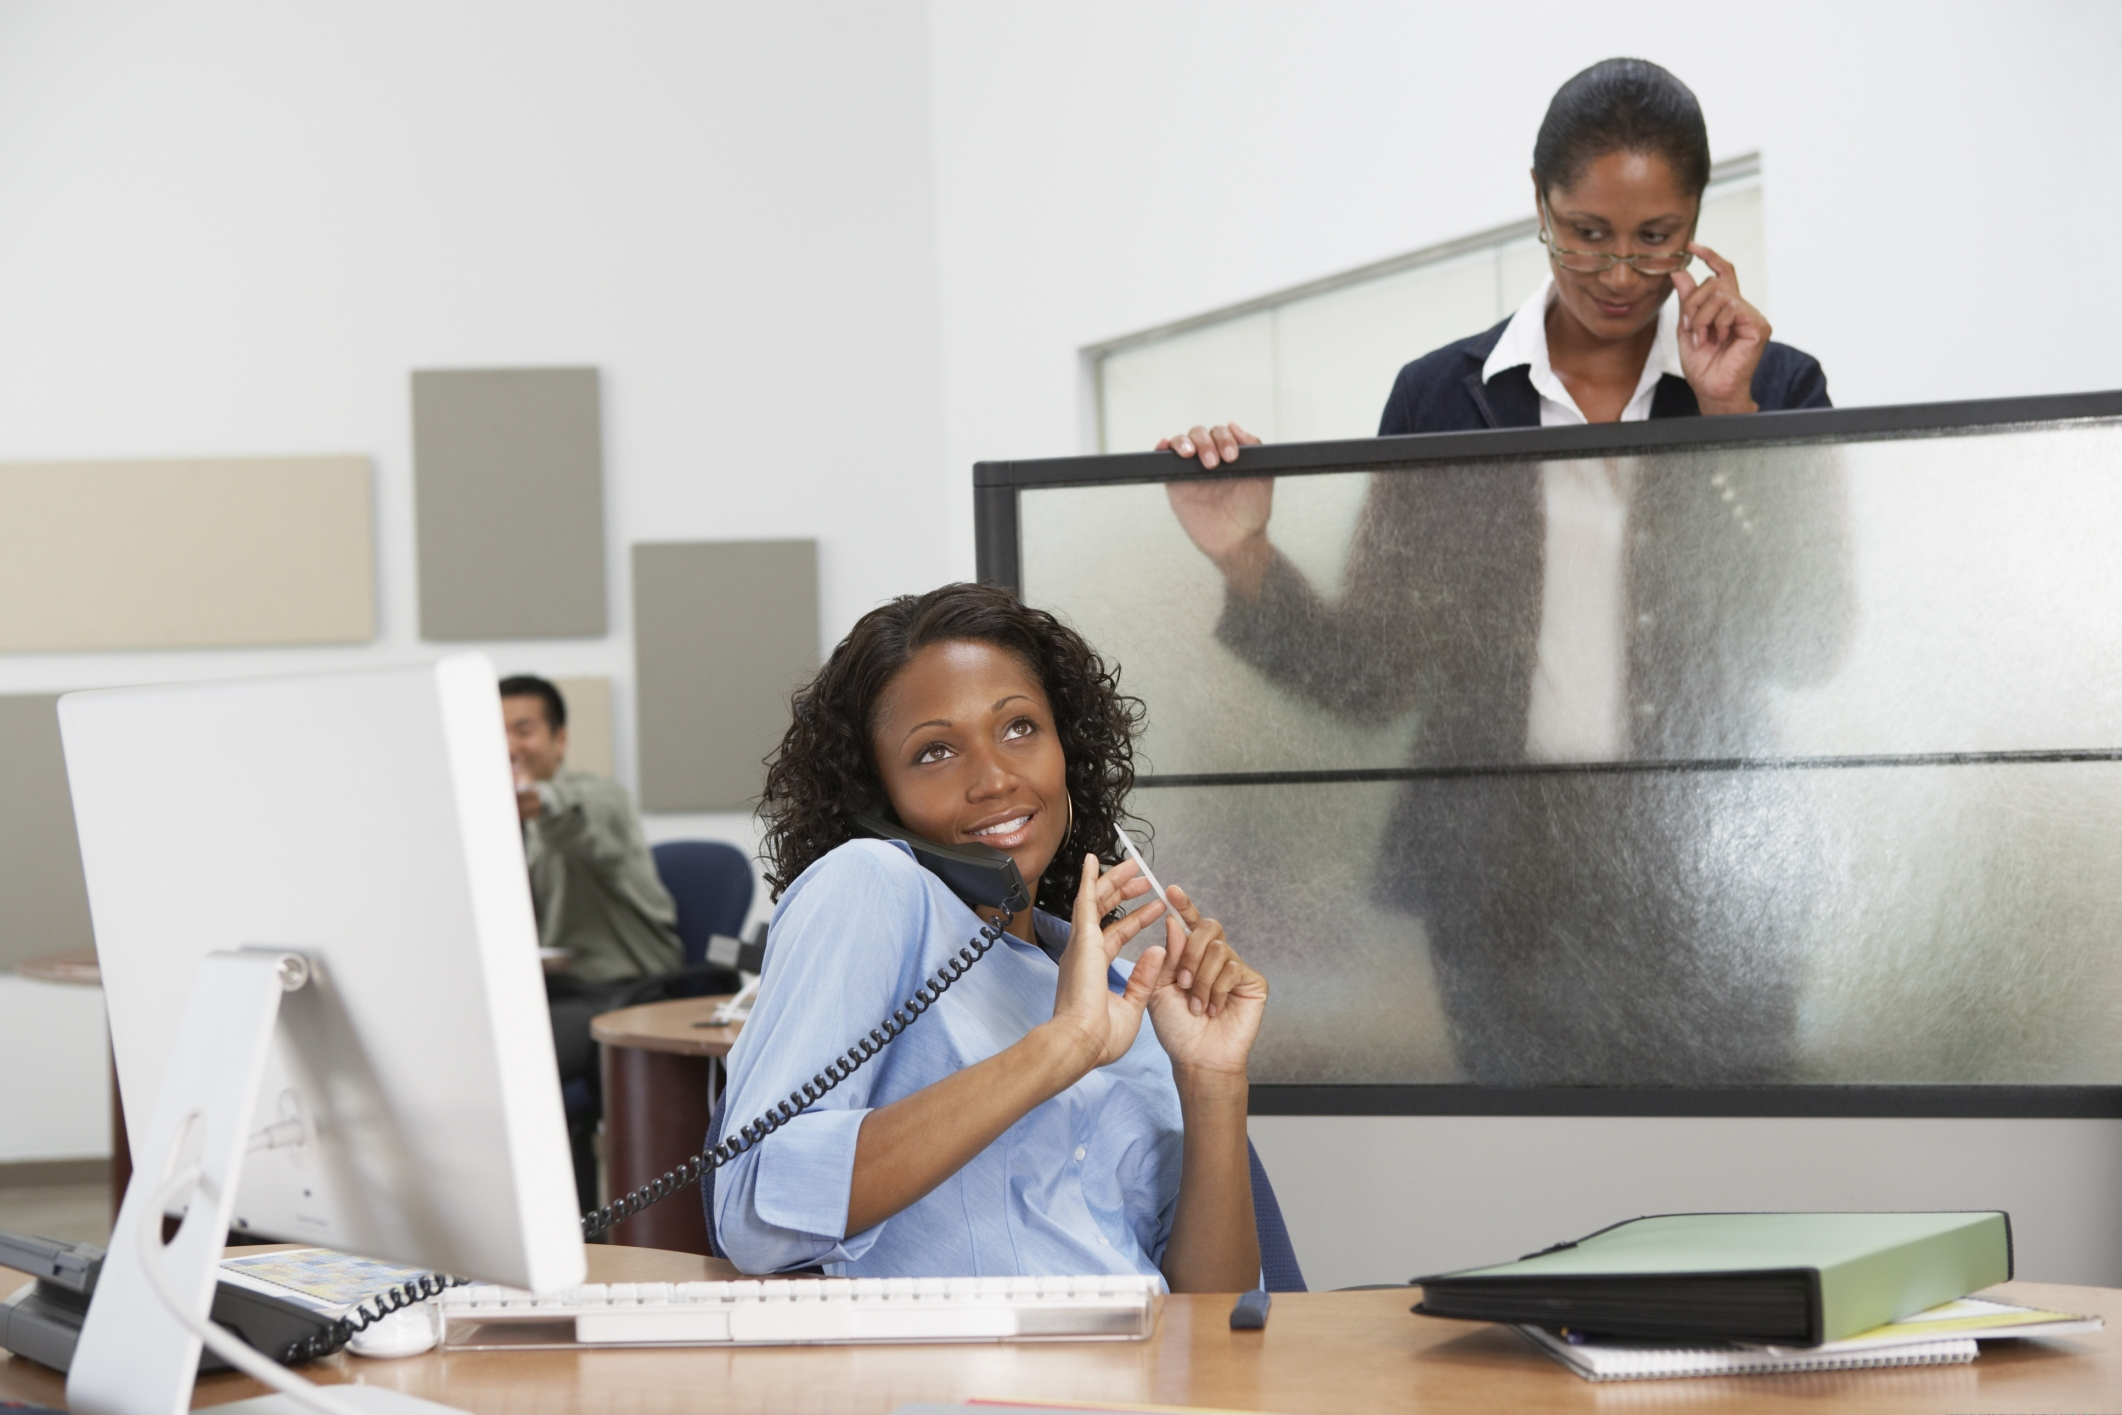 African businesswoman filing fingernails at desk with boss looking over cubicle wall